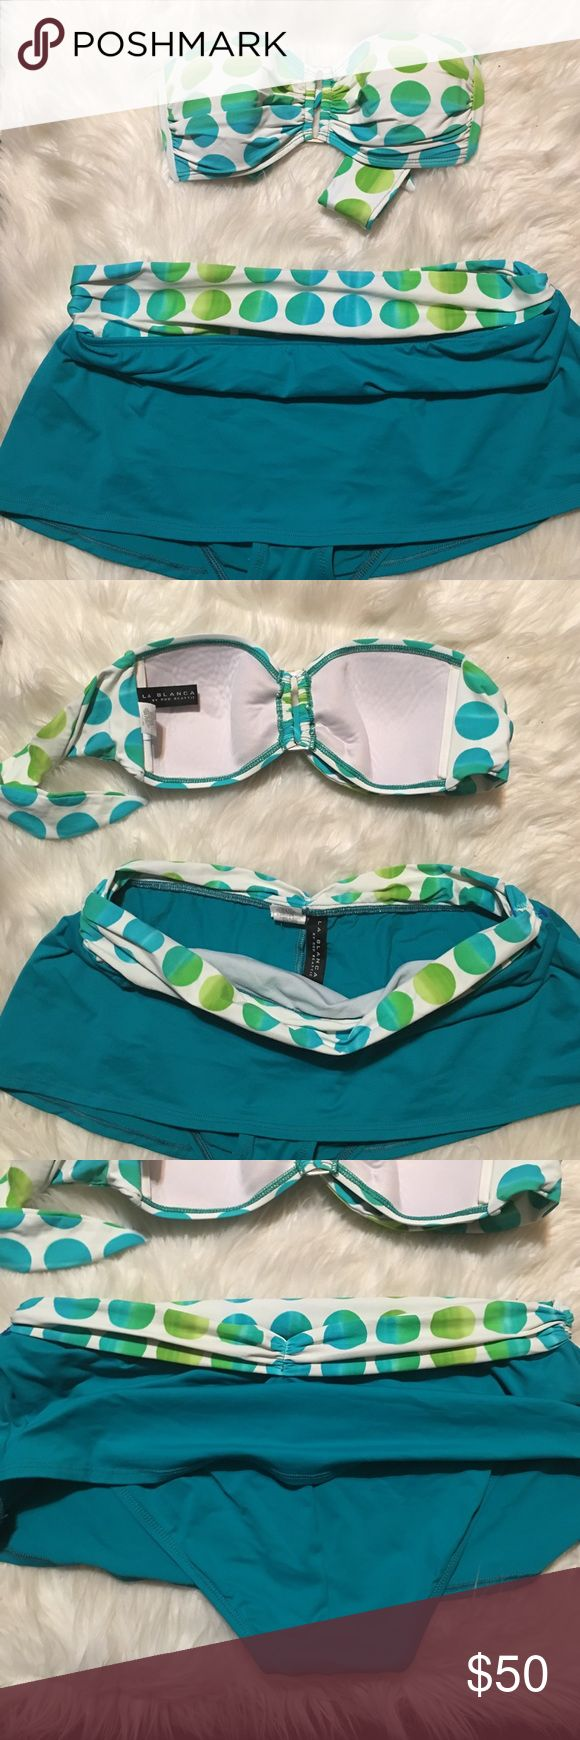 Polka dot swim suit Excellent condition. Beautiful teal and ombré green polka dots Bandeau bra top ; Skirted bikini bottom. Silver hardware. La Blanca Swim Bikinis